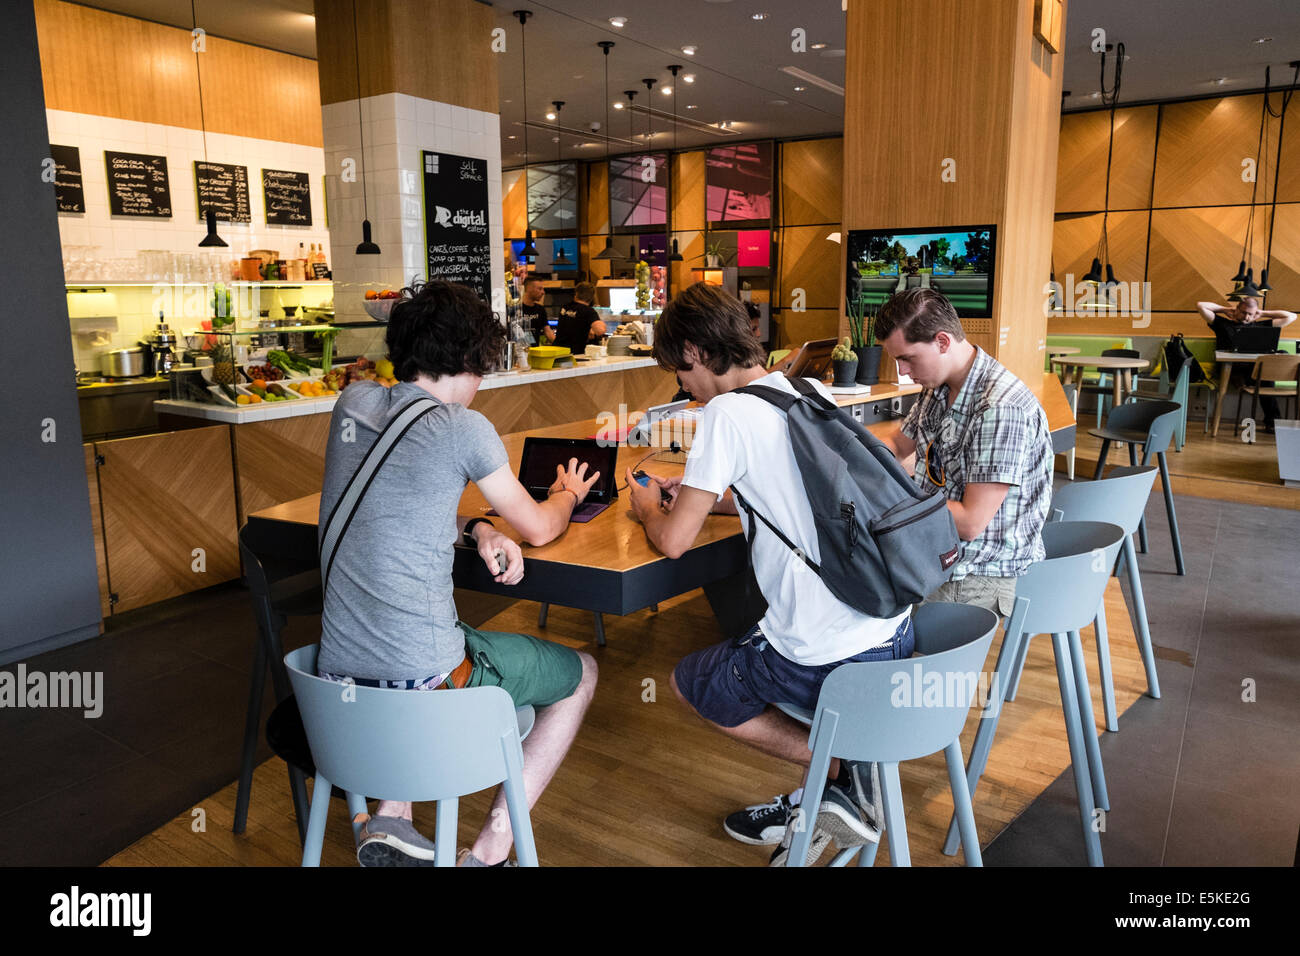 new Microsoft Digital Eatery cafe on Unter den Linden in Berlin Germany - Stock Image